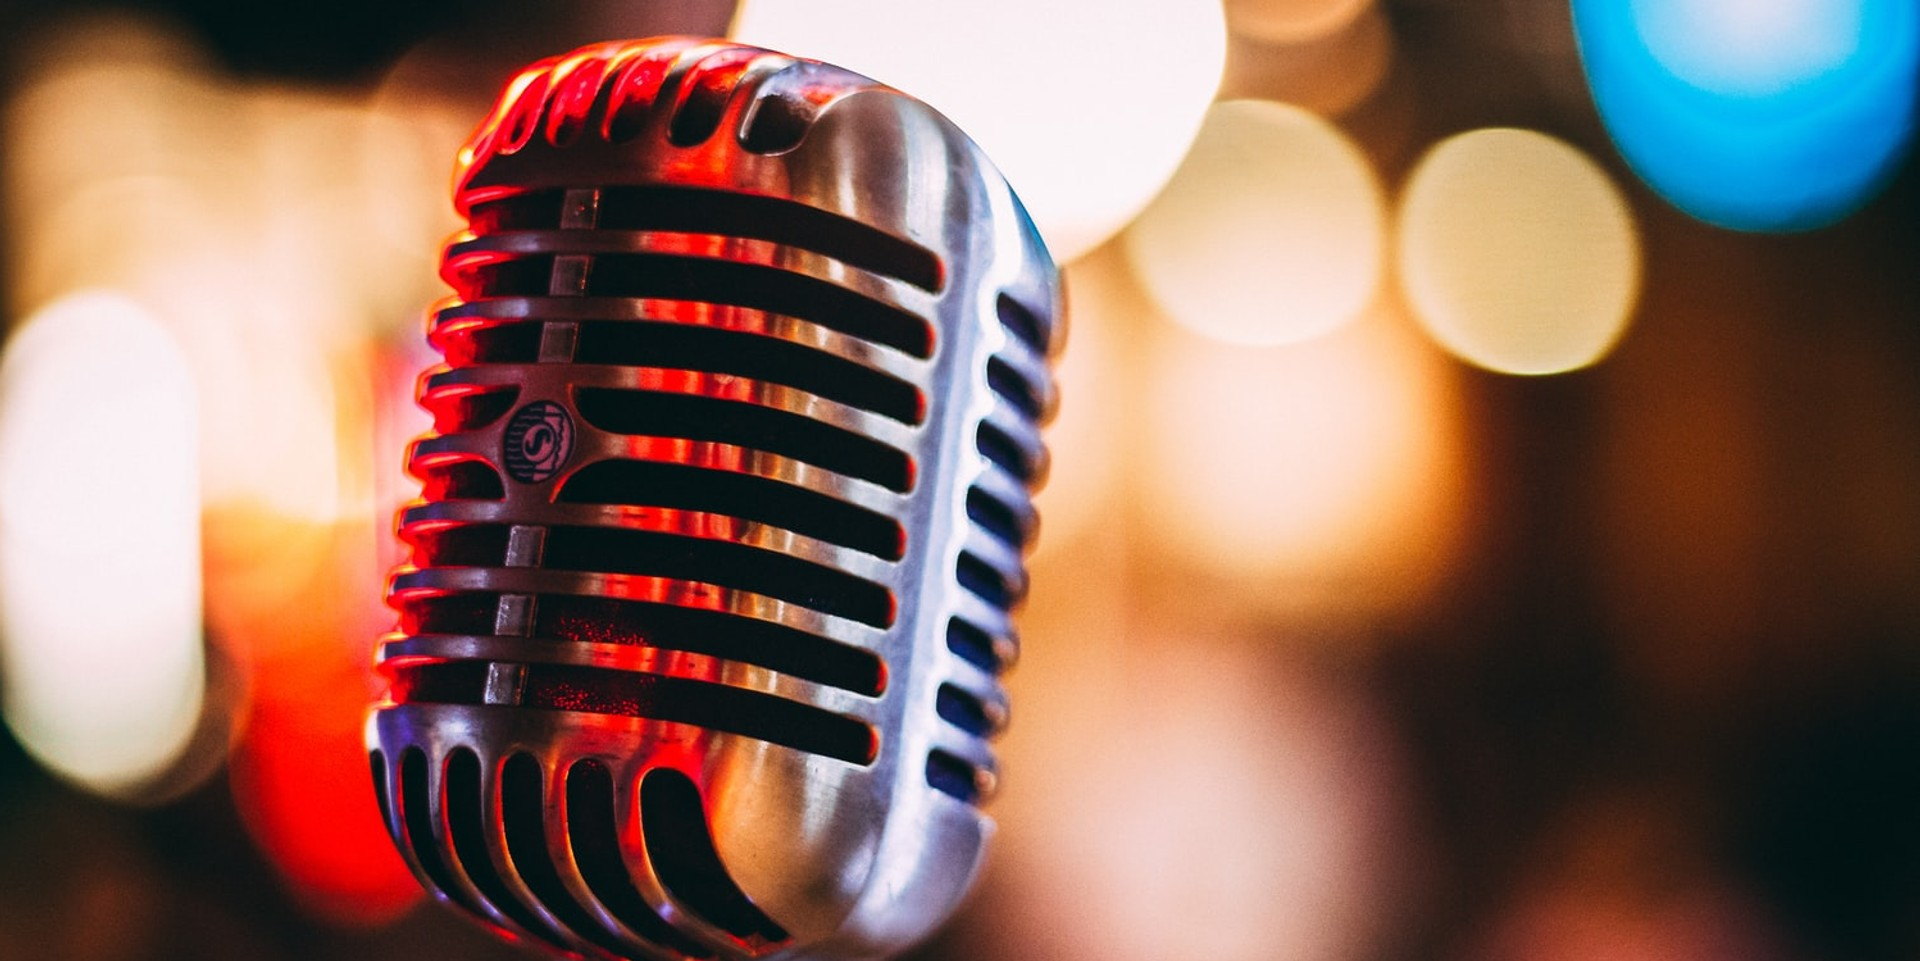 Sing karaoke anytime with music app JOOX's newest 'Quick Sing' feature